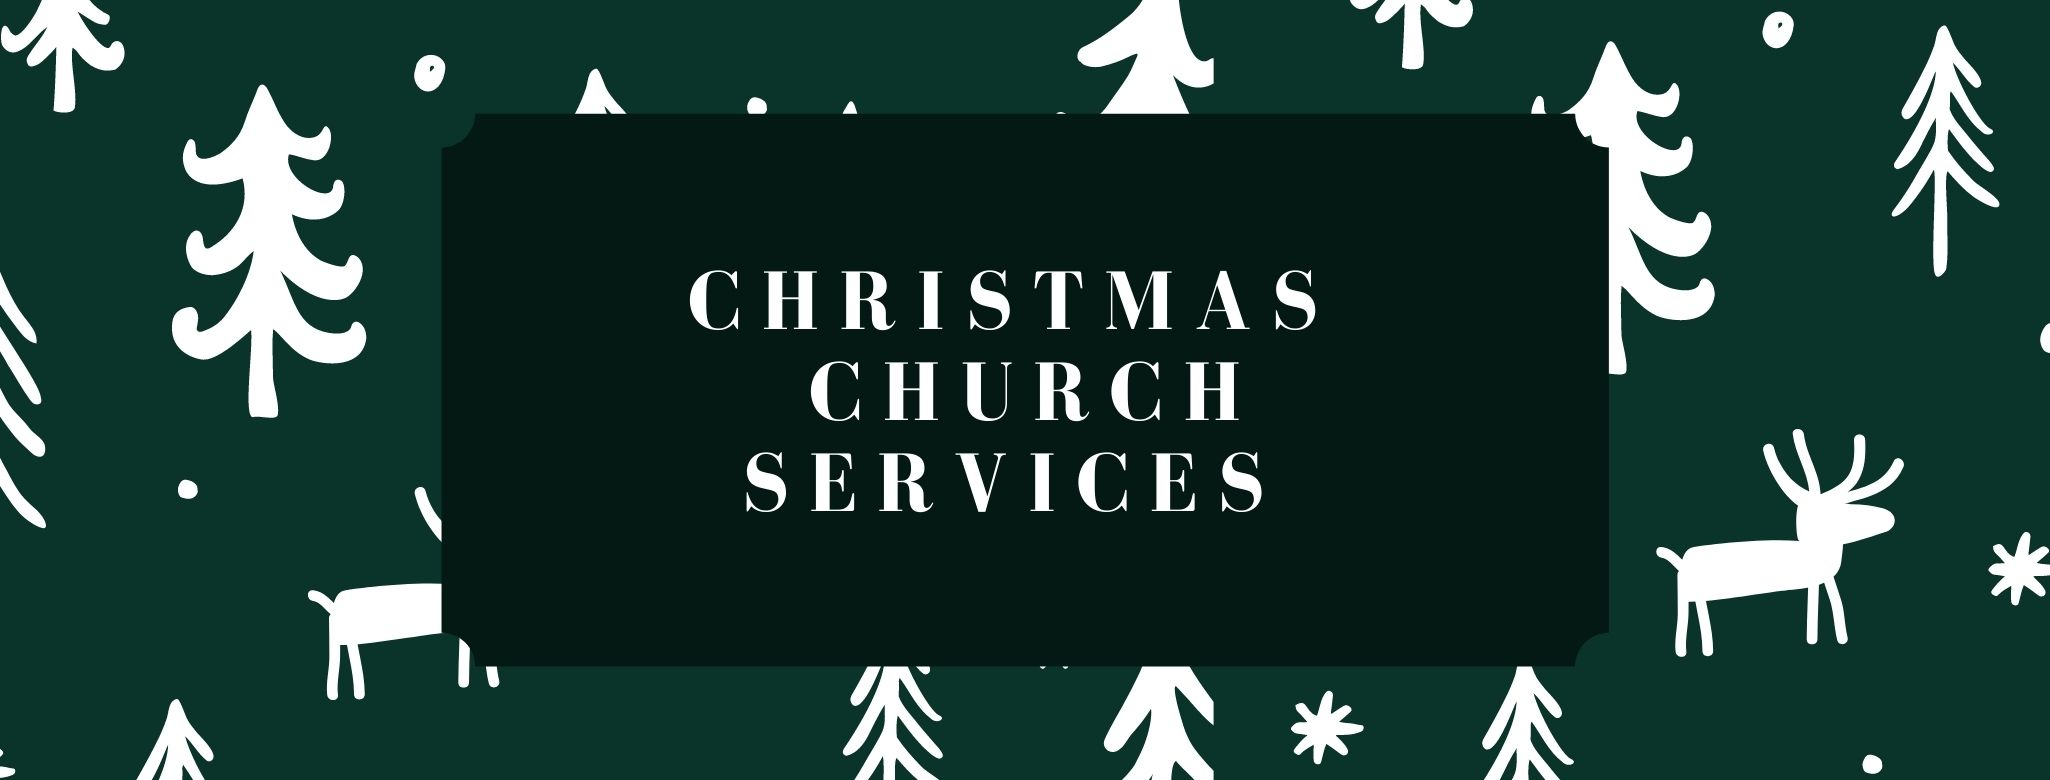 Copy of Copy of christmas church services image